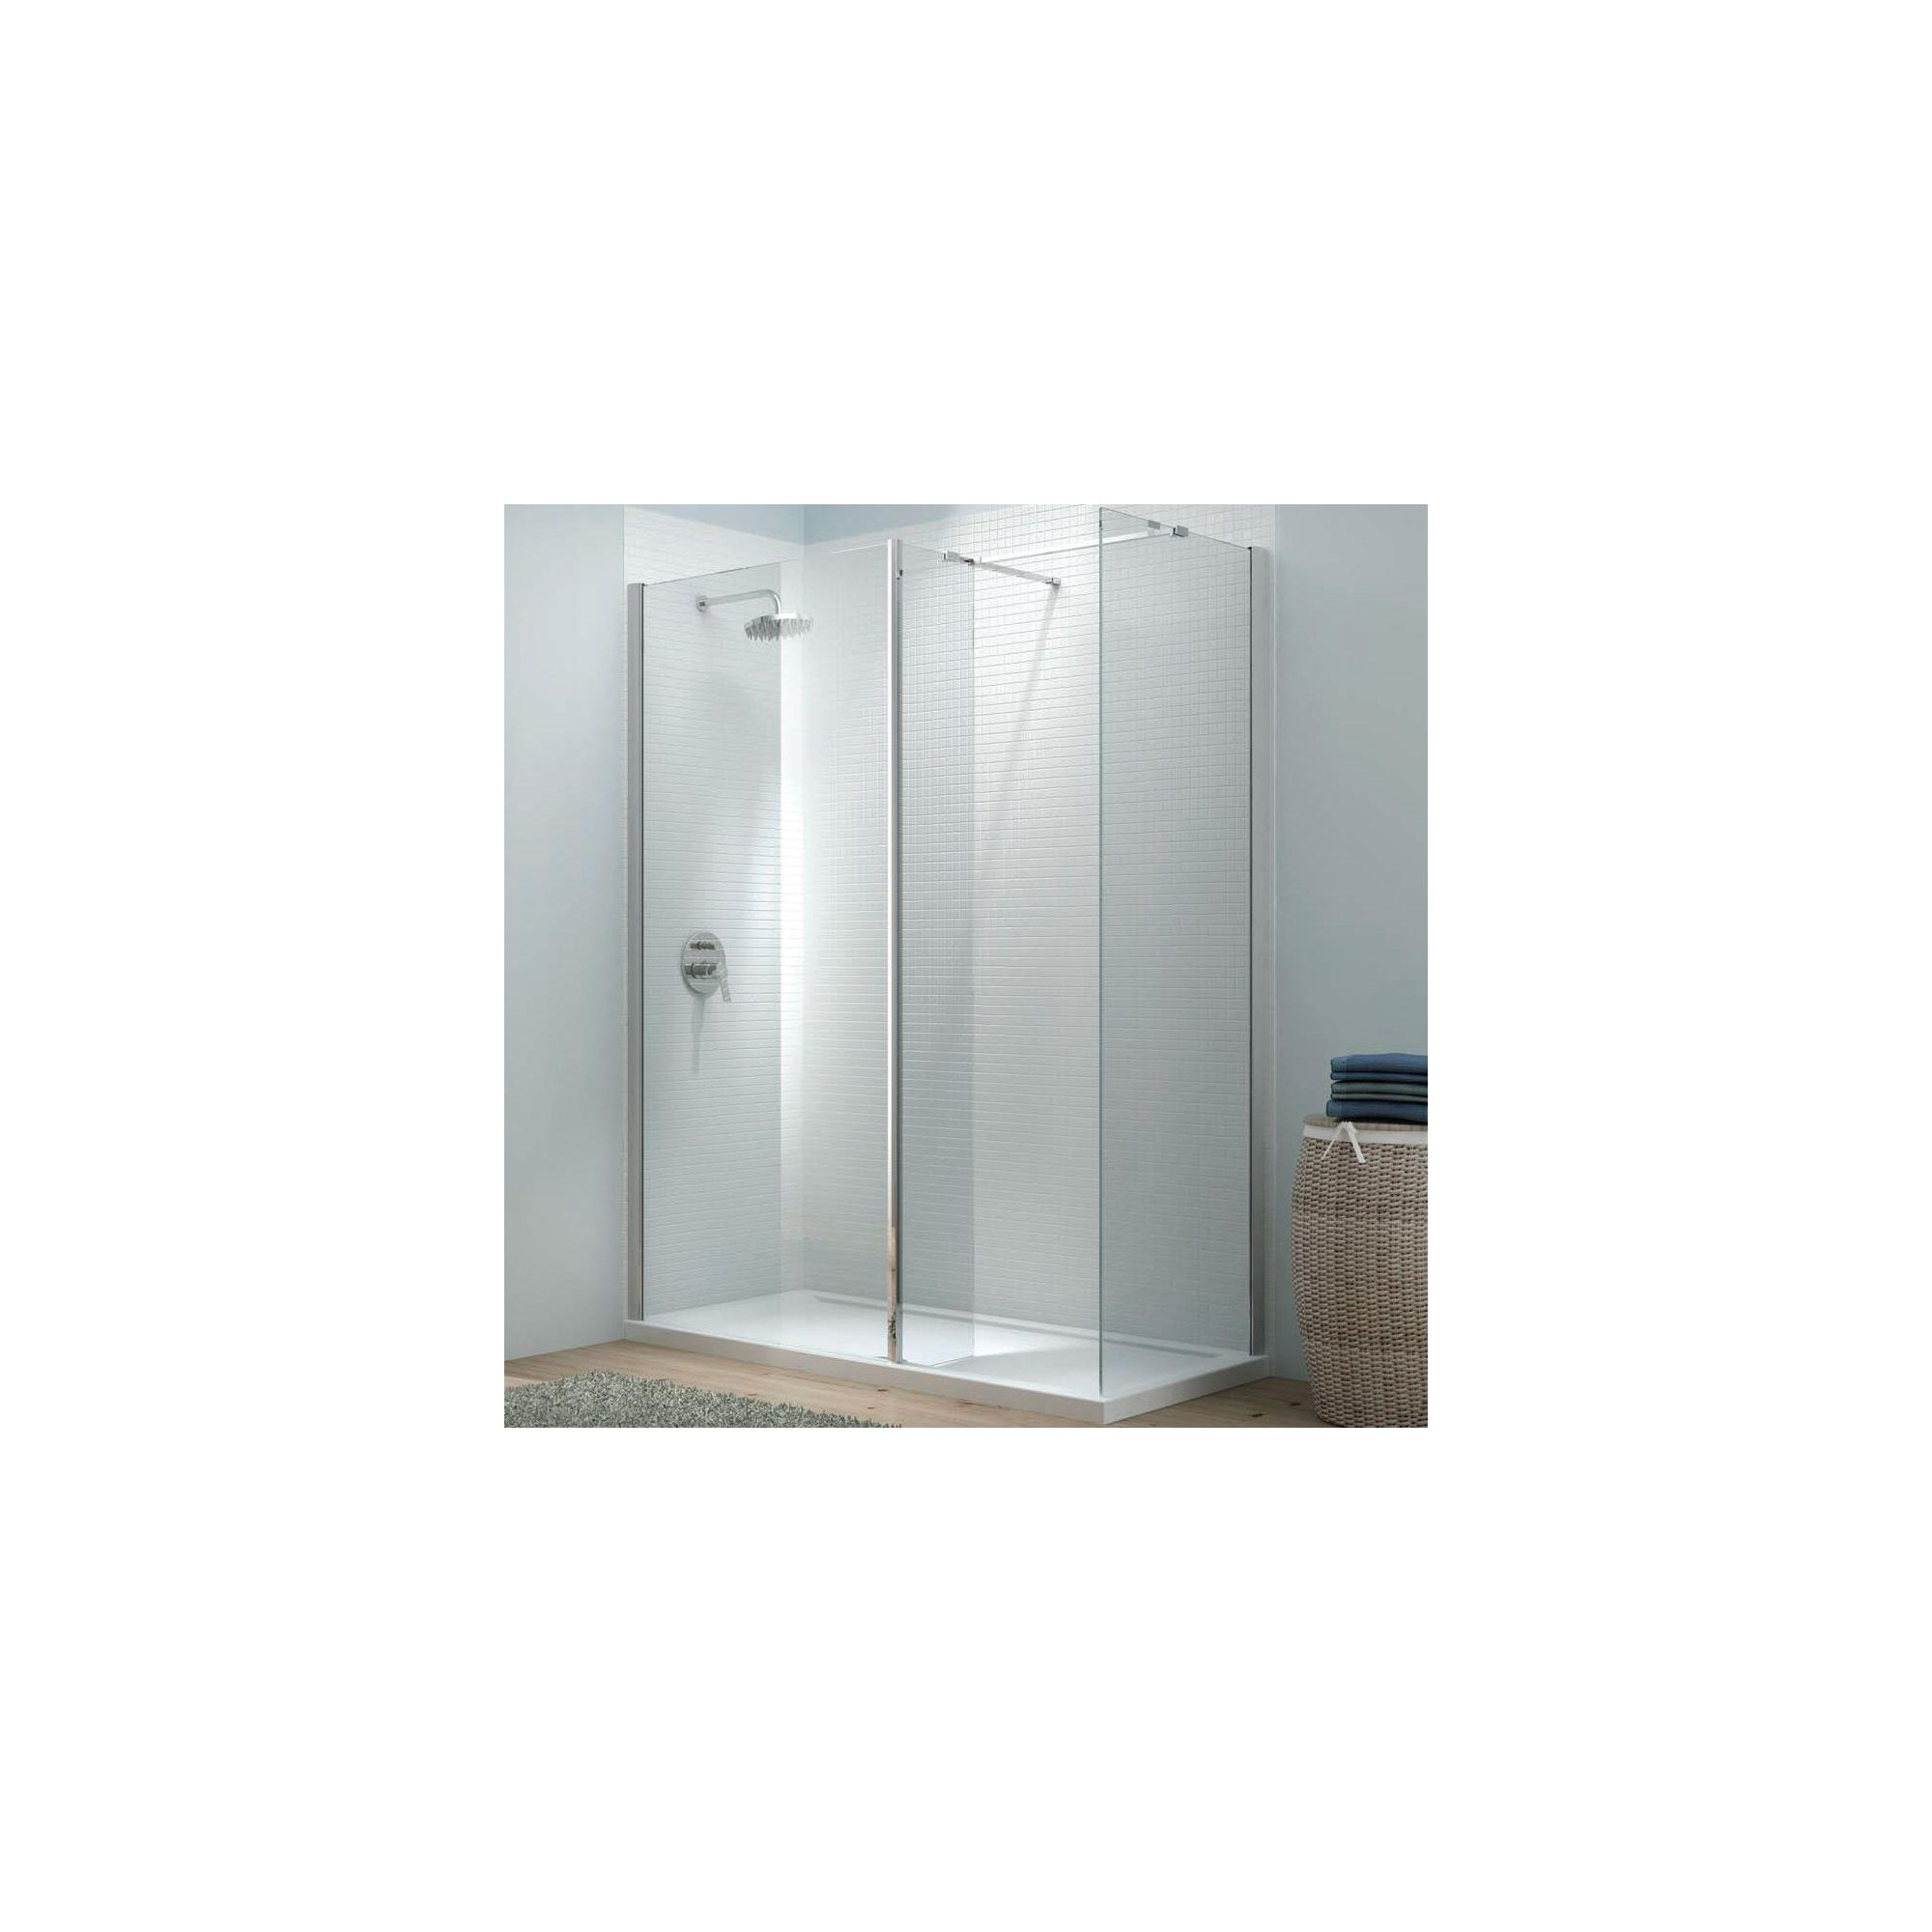 Merlyn Vivid Eight Cube Alcove Walk-In Shower Enclosure, 1700mm x 800mm, Low Profile Tray, 8mm Glass at Tesco Direct